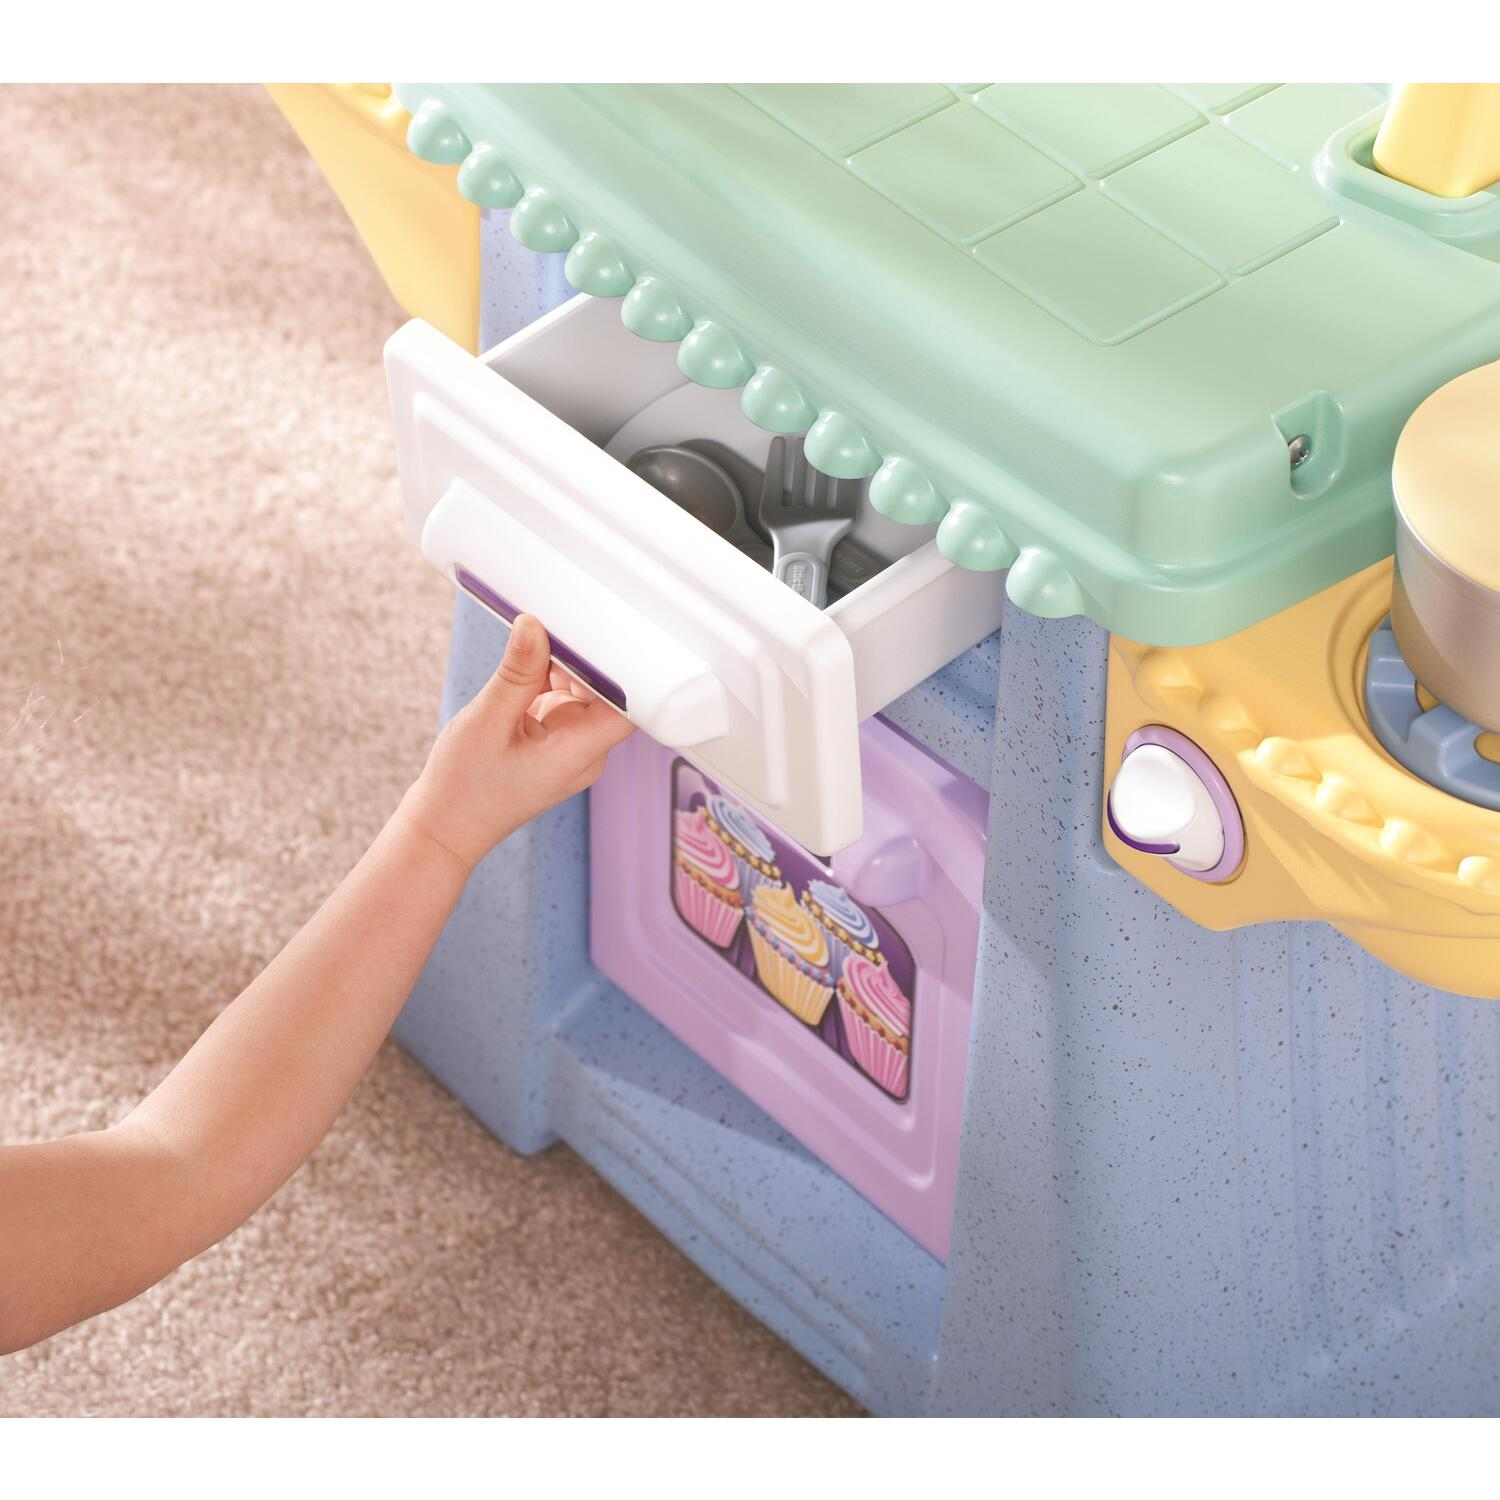 Little Tikes Cupcake Kitchen: Little Tikes Cupcake Kitchen By OJ Commerce 621567